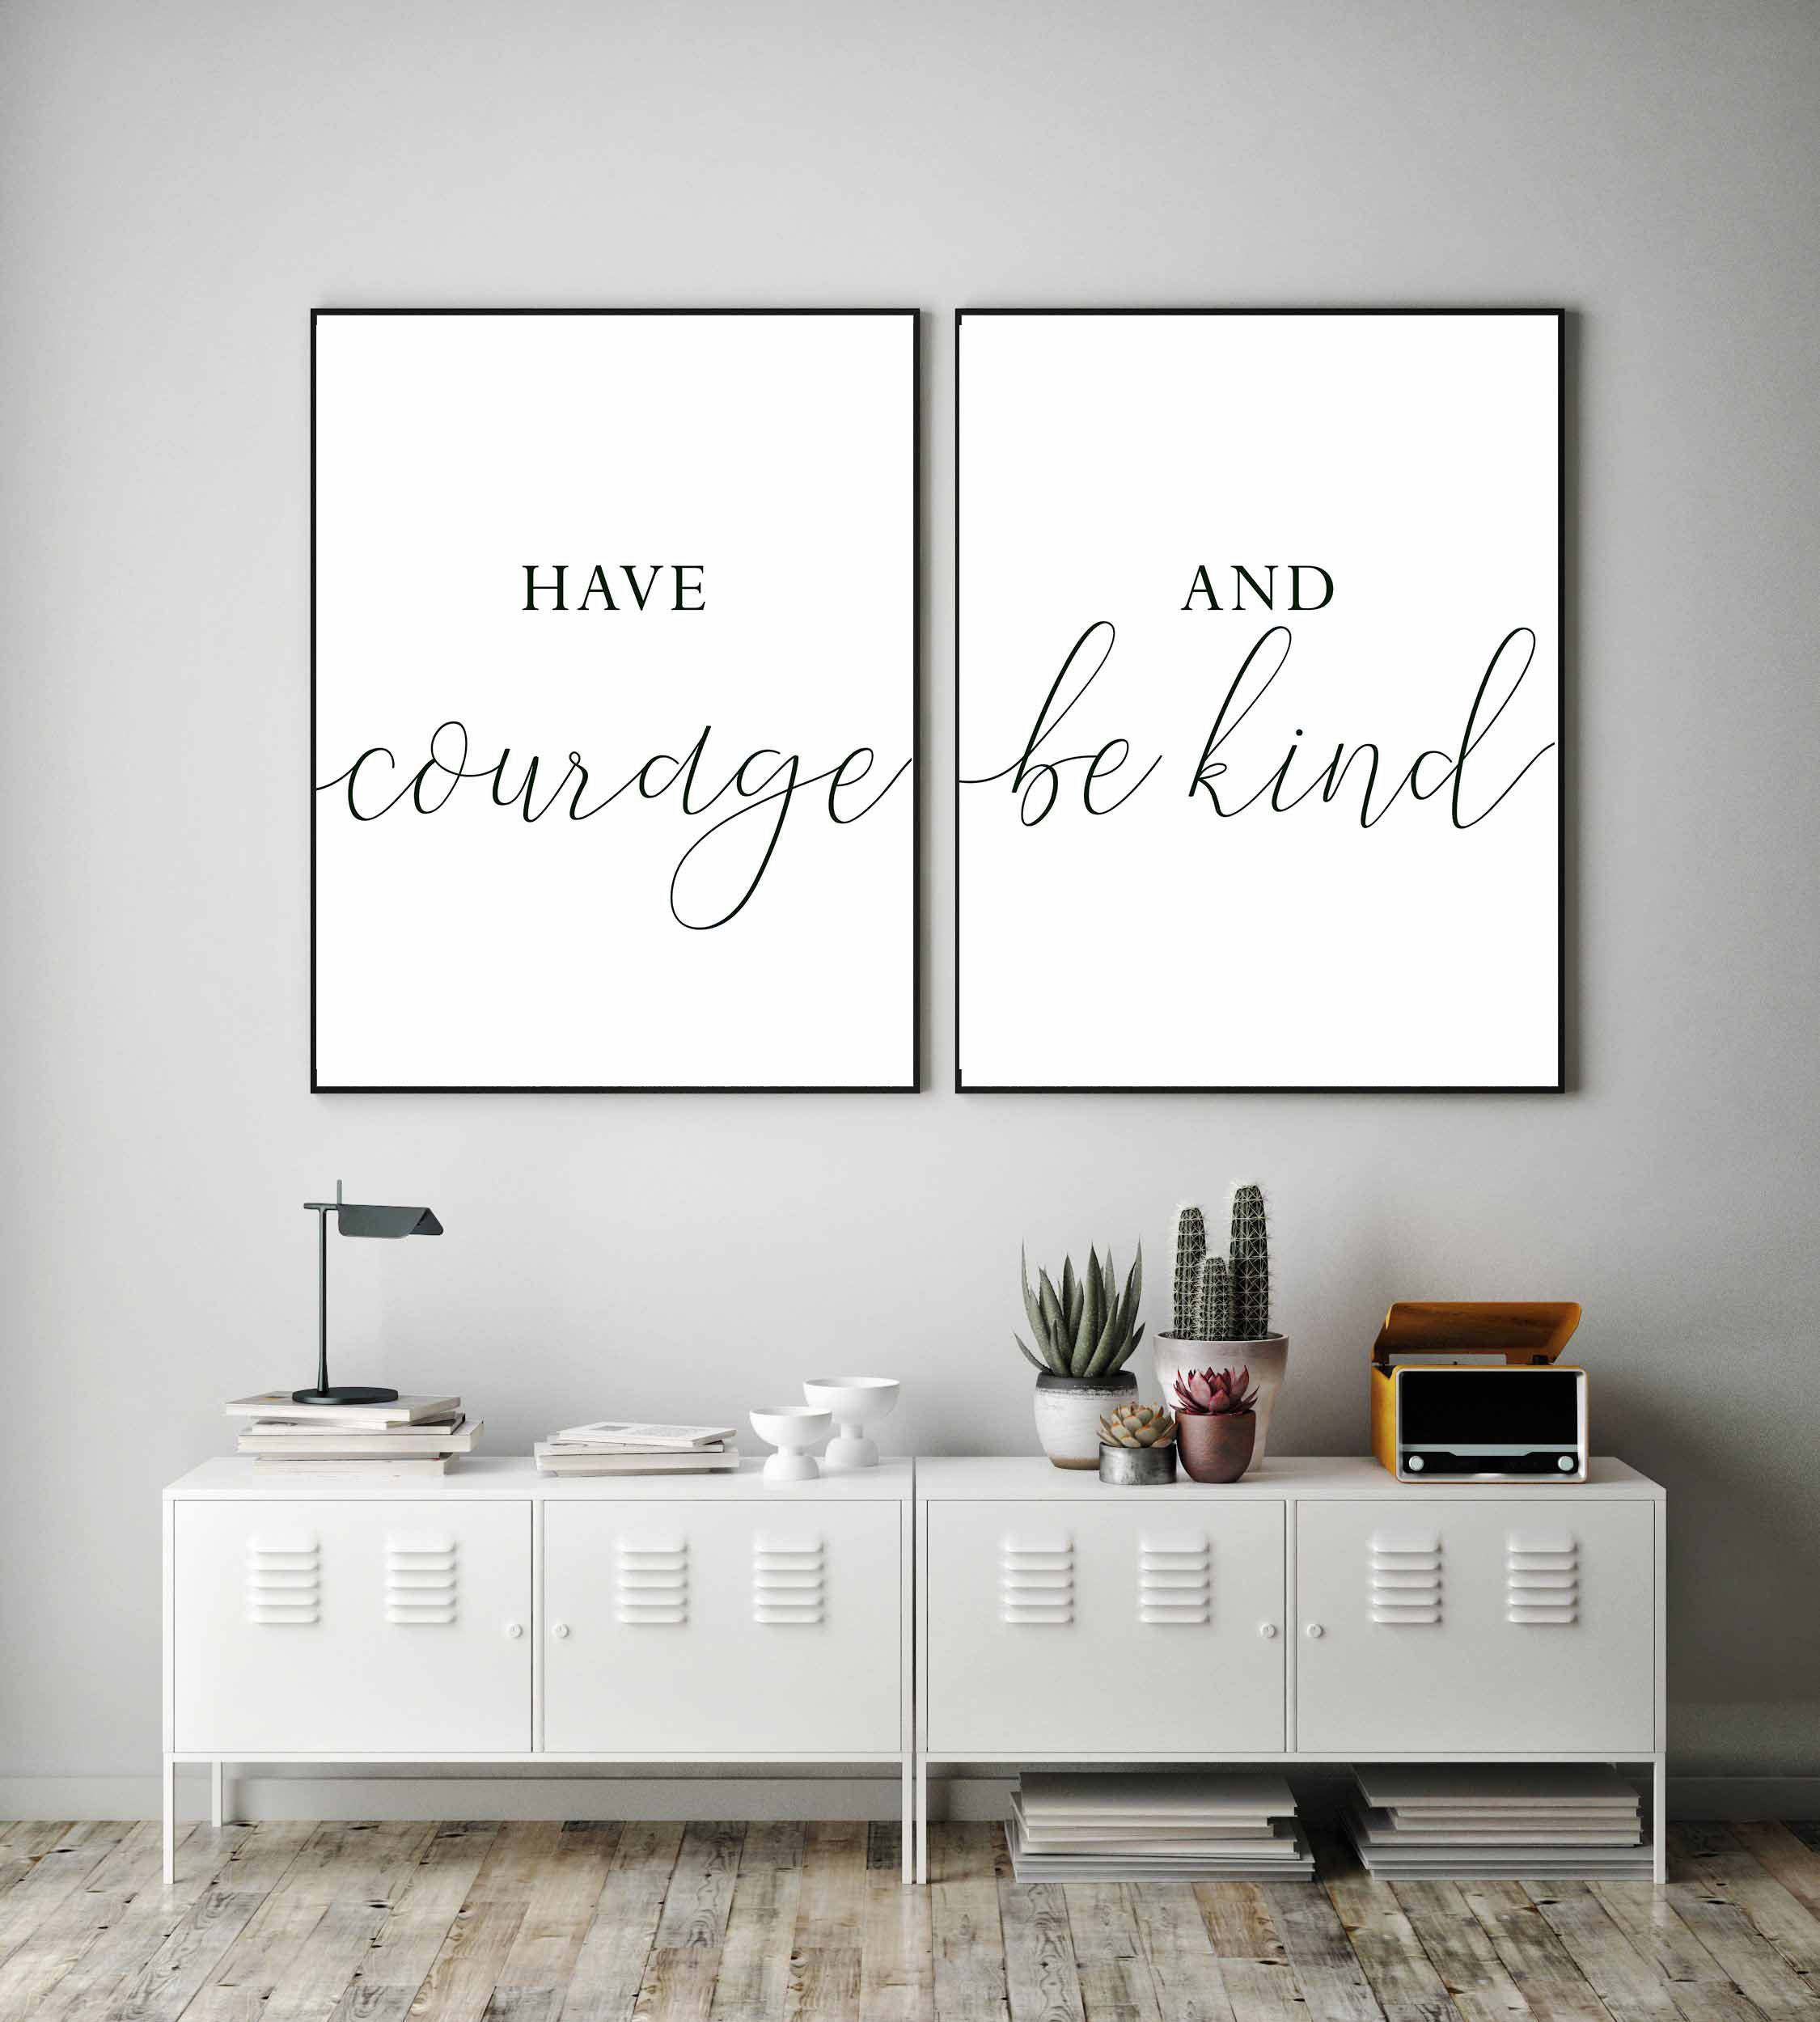 Printable Wall Arthave Courage And Be Kindnursery Decorset Etsy Wall Printables Wall Decor Bedroom East Urban Home